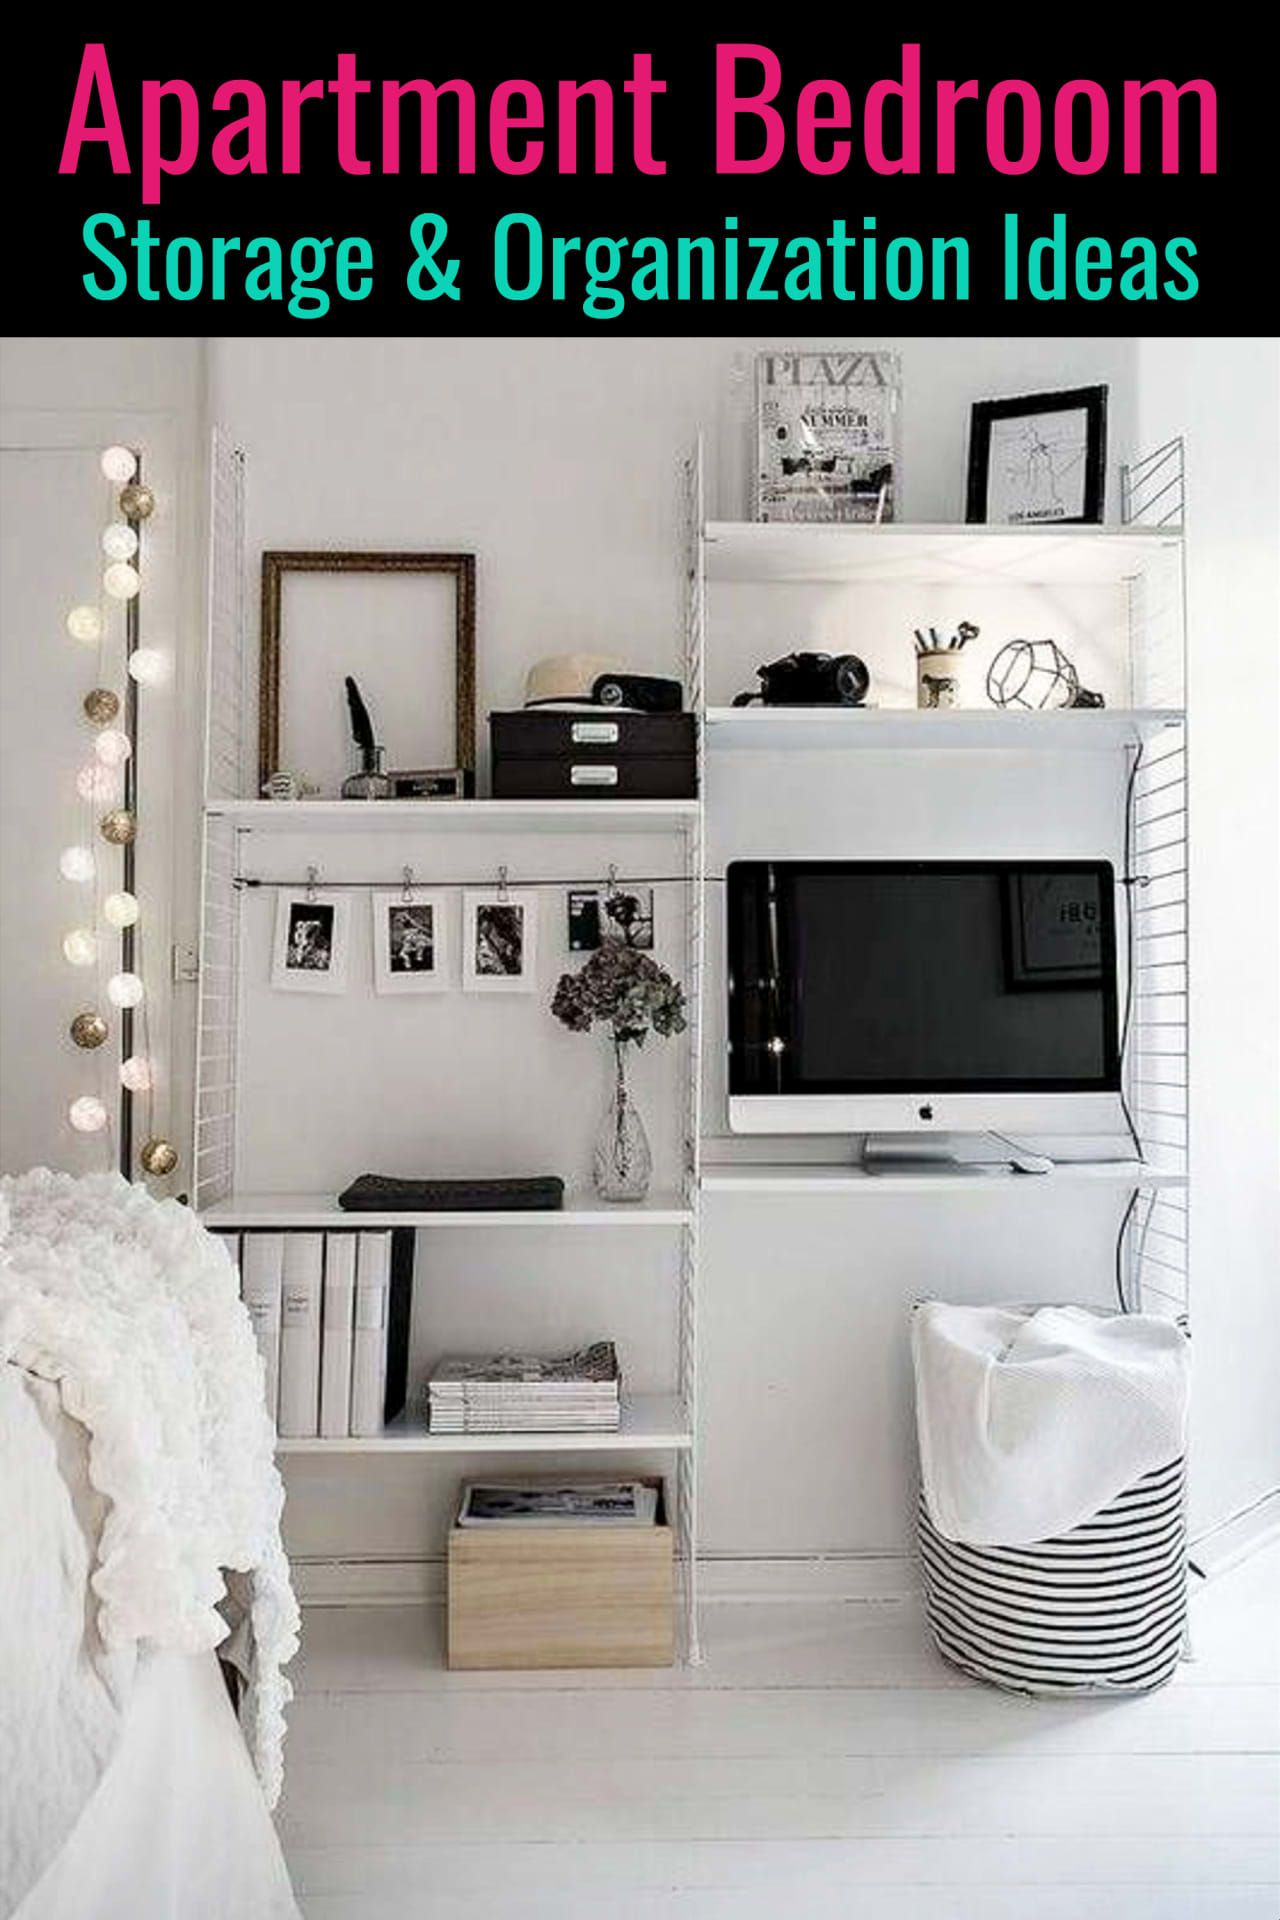 Small Bedroom Storage Hacks - Clever Storage Ideas for Small